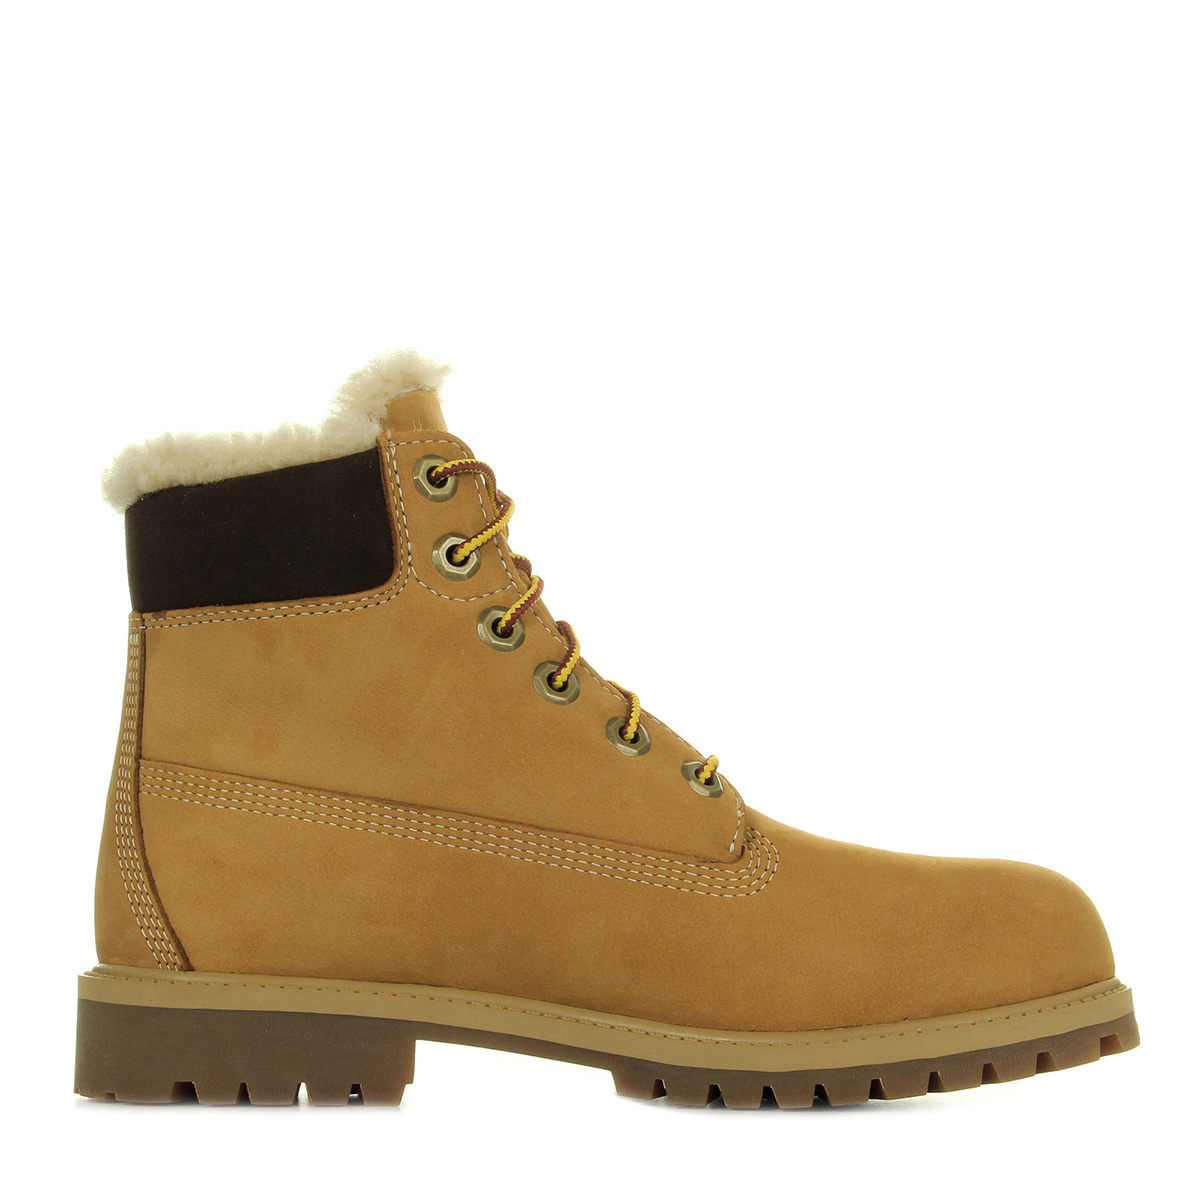 Timberland 6 Inch Premium WP Shearling Wheat CA1BEI, Boots